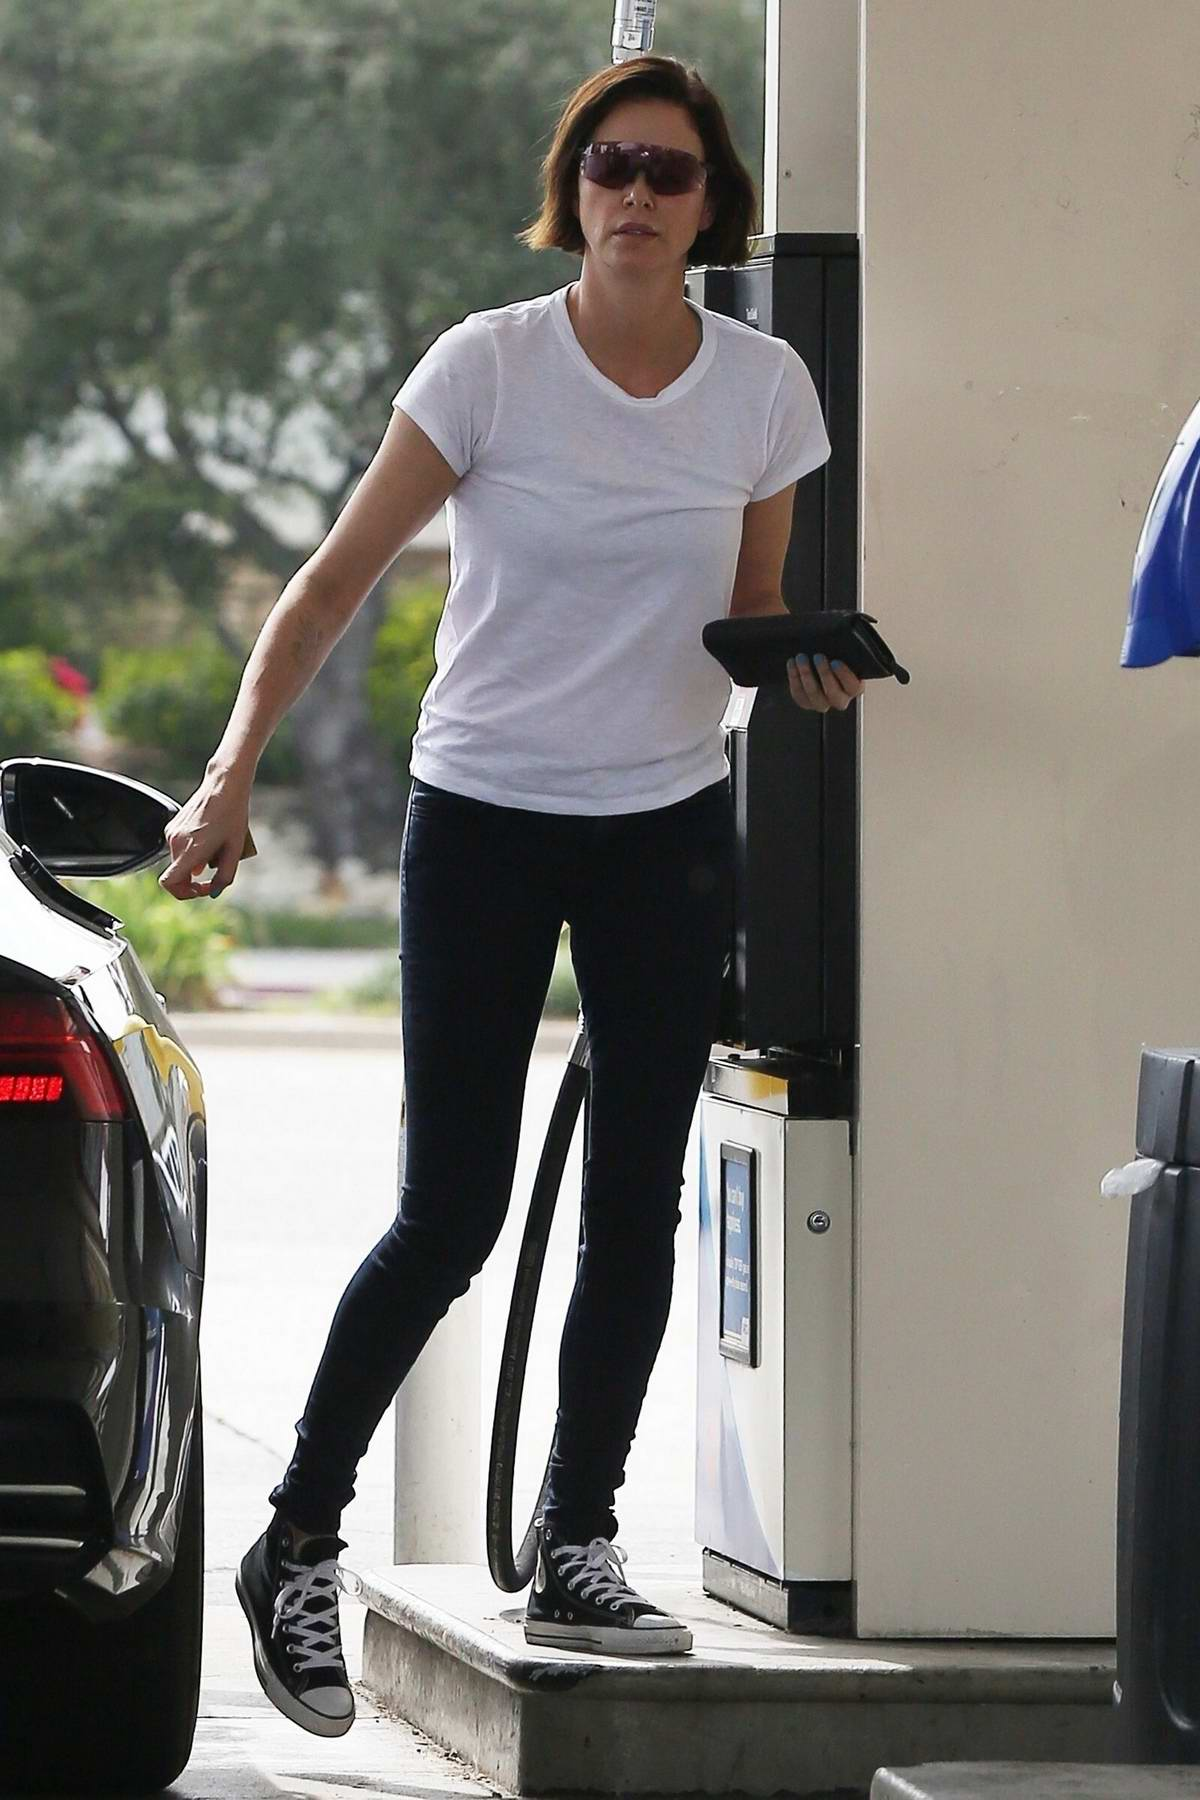 Charlize Theron keeps it casual in a white tee and jeans as she stops by a gas station in Los Angeles